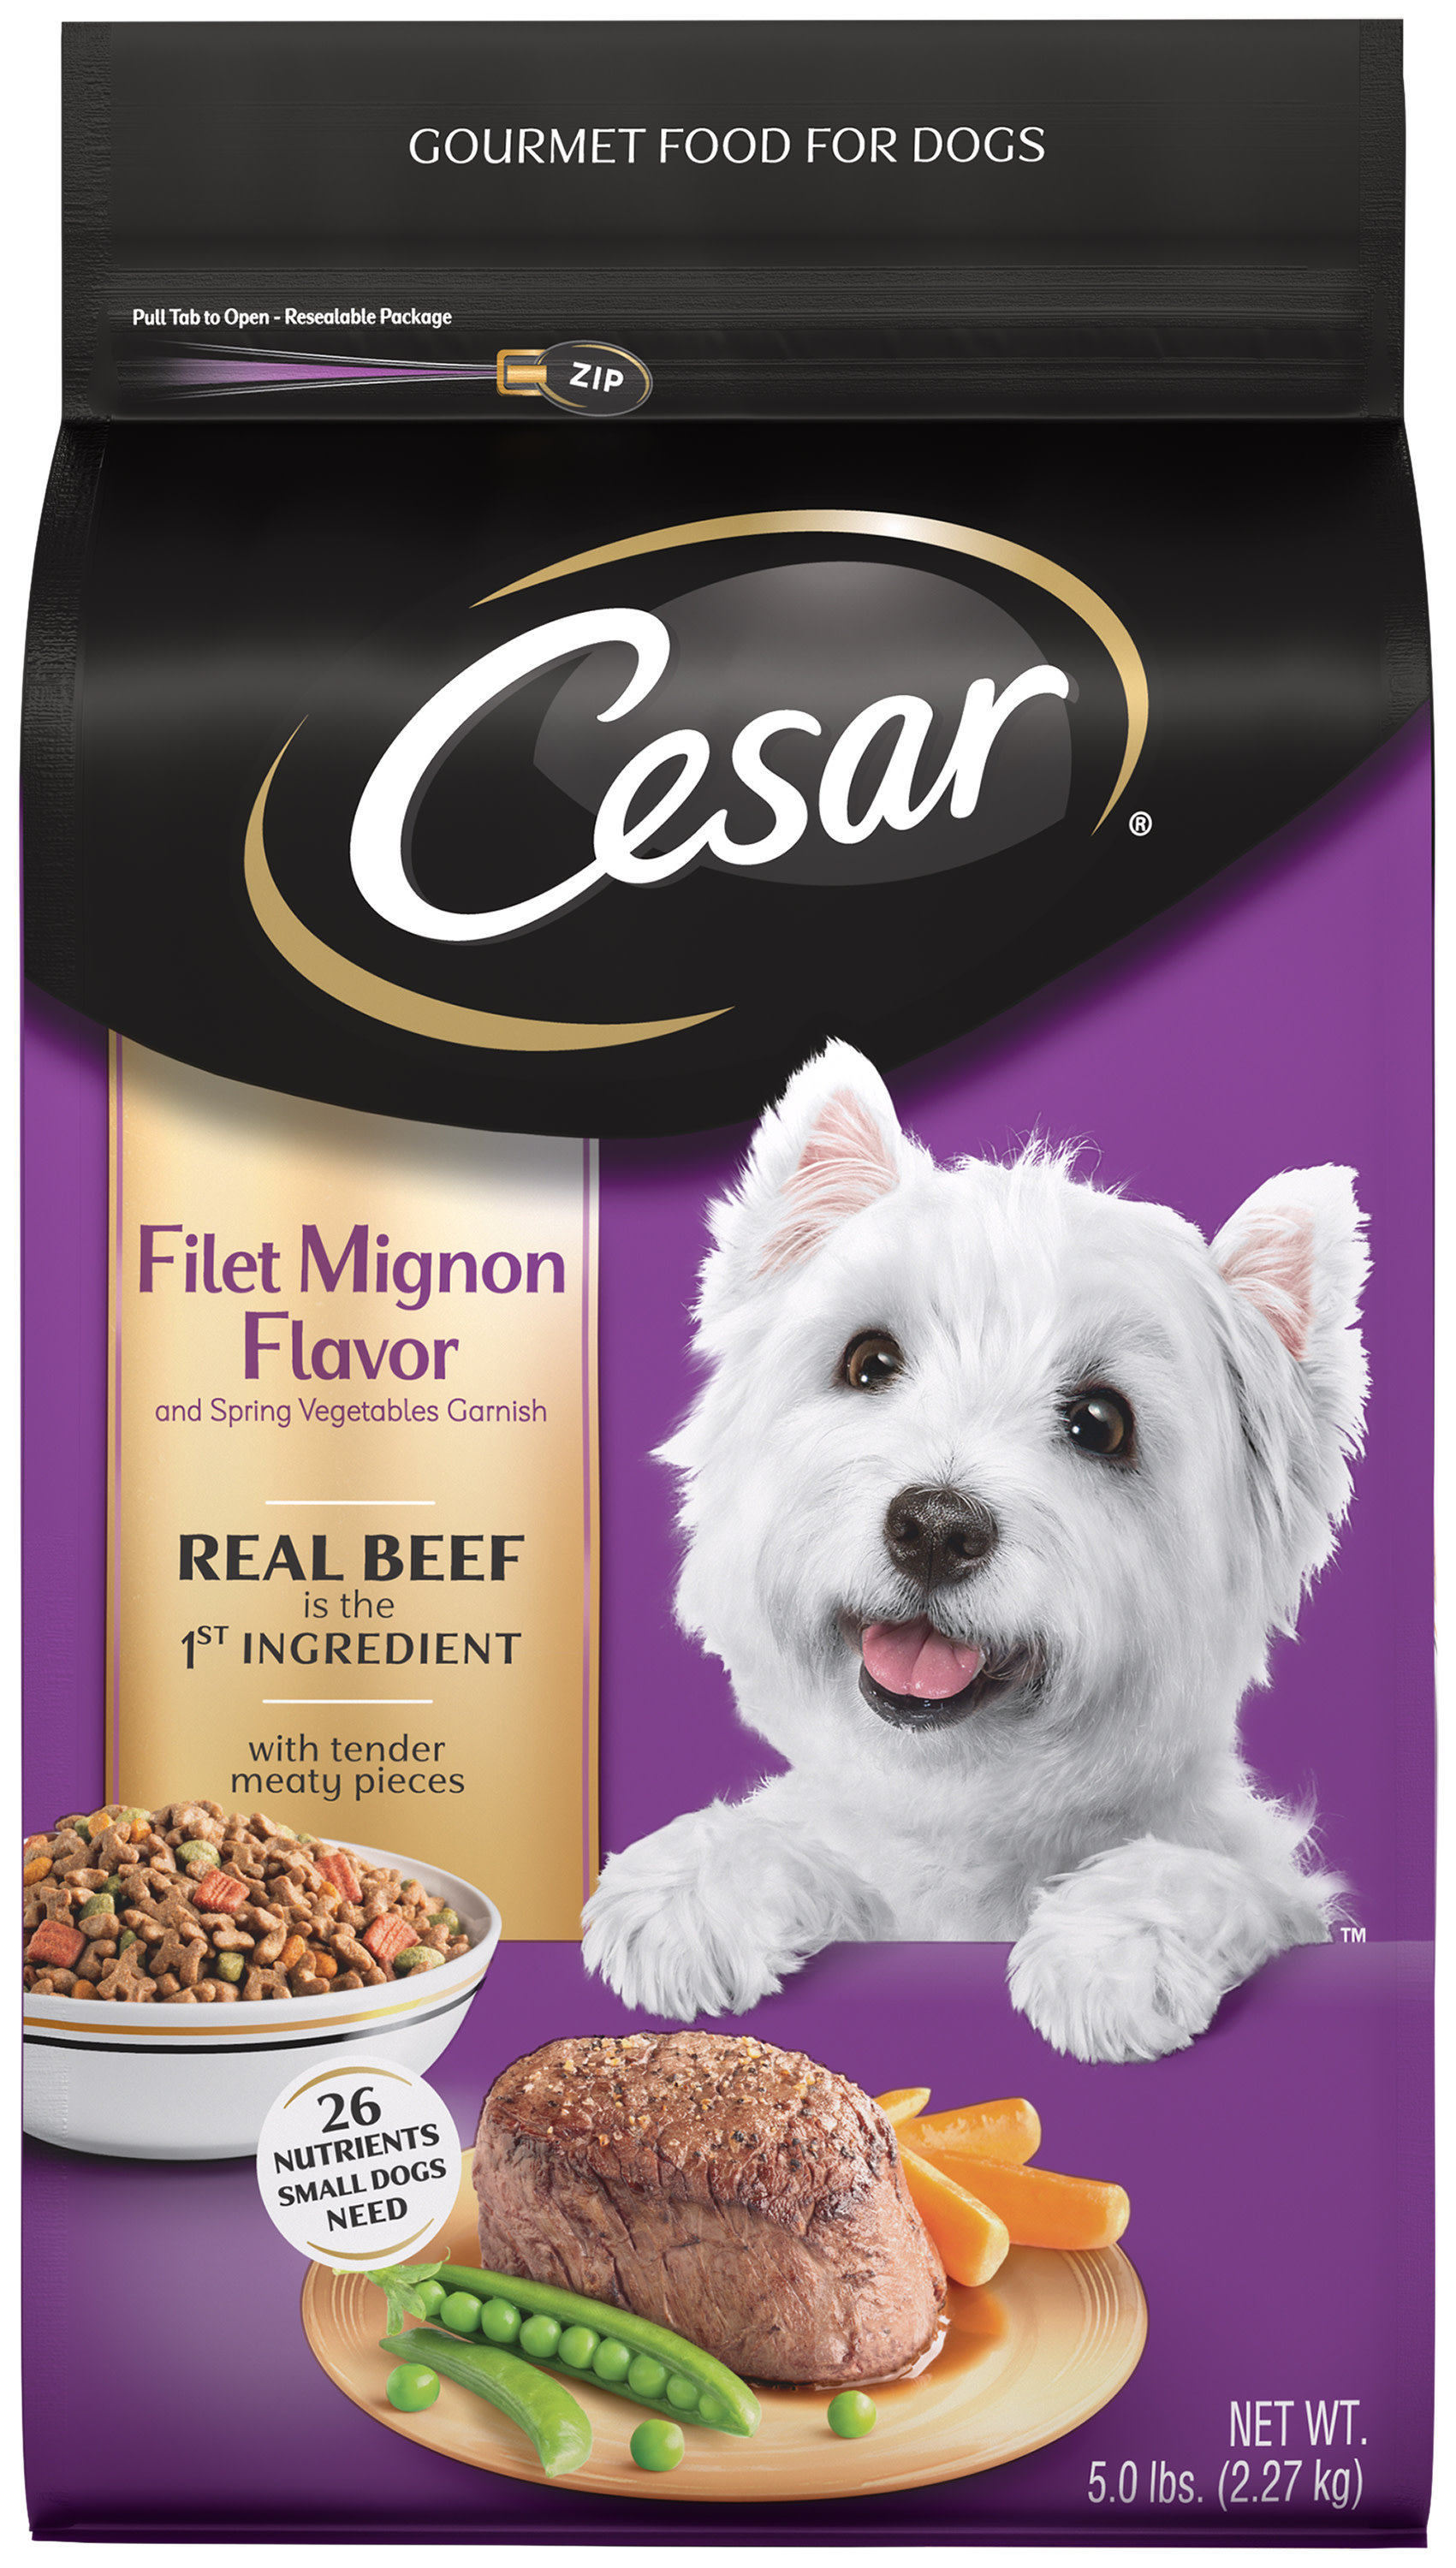 CESAR Small Breed Dry Dog Food Filet Mignon Flavor with Spring Vegetables Garnish, 5 lb. Bag by Mars Petcare